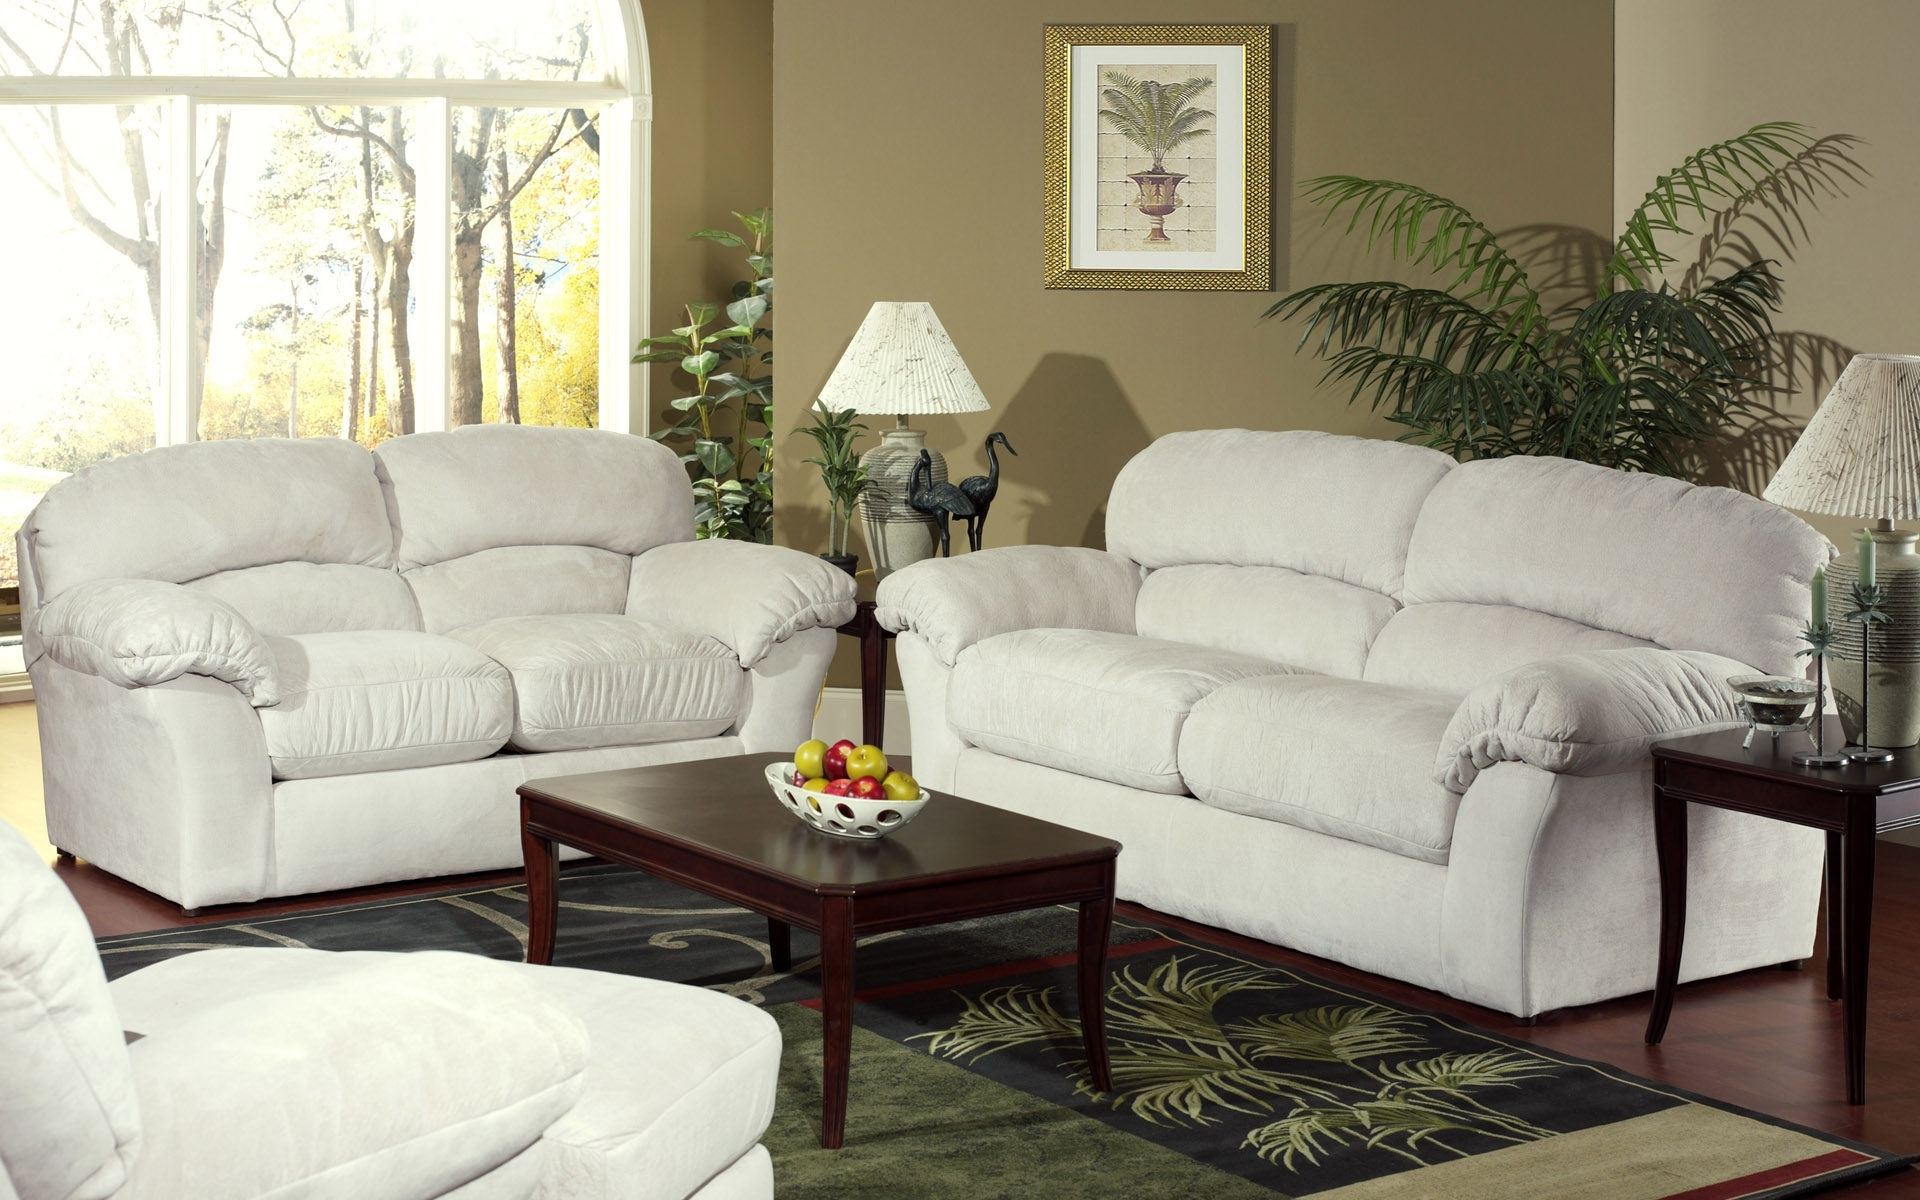 Sofa Chairs For Living Room In Latest Sofa Chairs For Living Room New At Cool Sofas And Set Sets With (View 3 of 15)